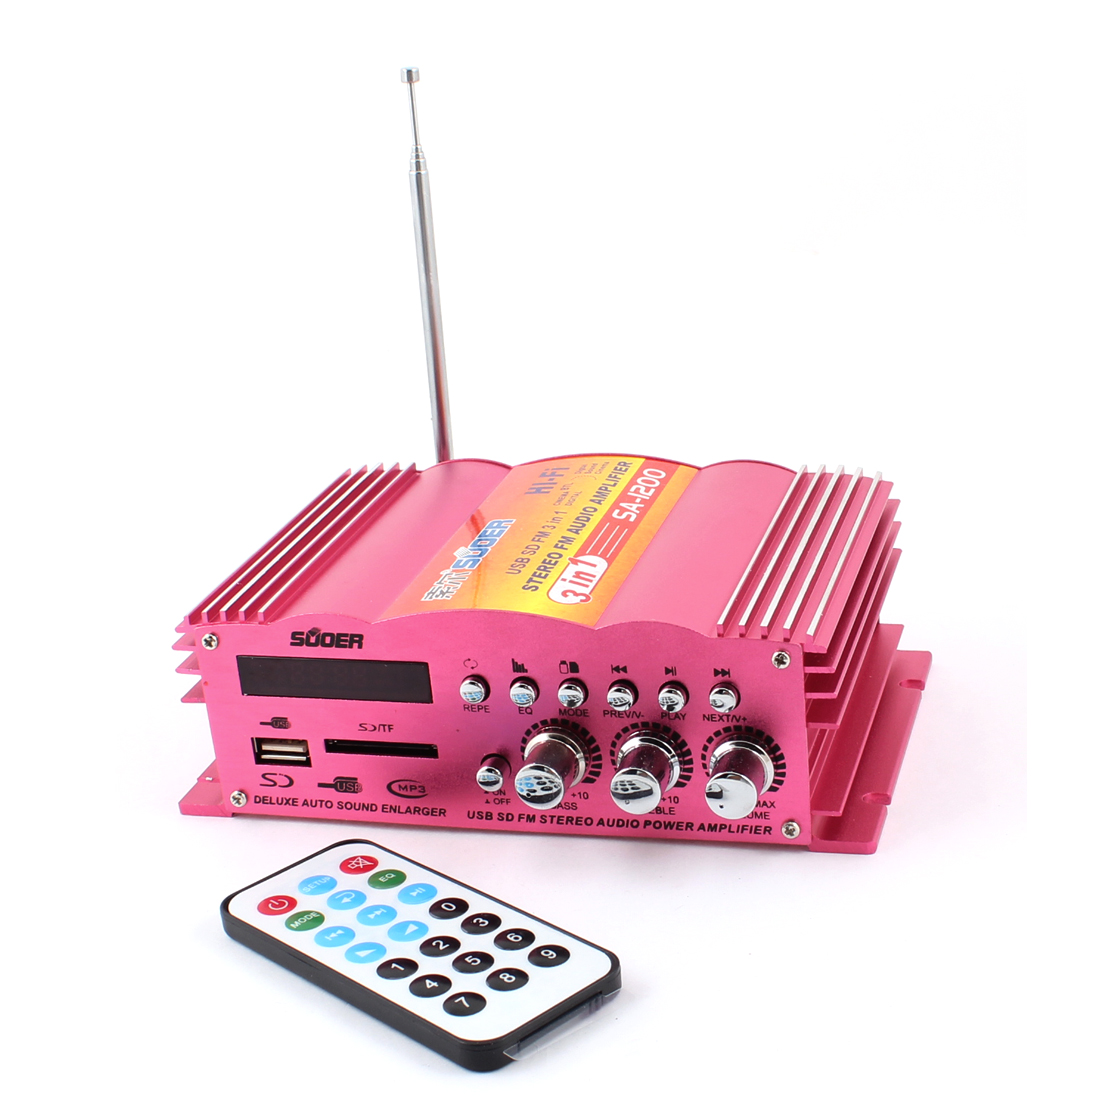 USB SD FM Motorcycle Car Stereo Audio Amplifier Fuchsia